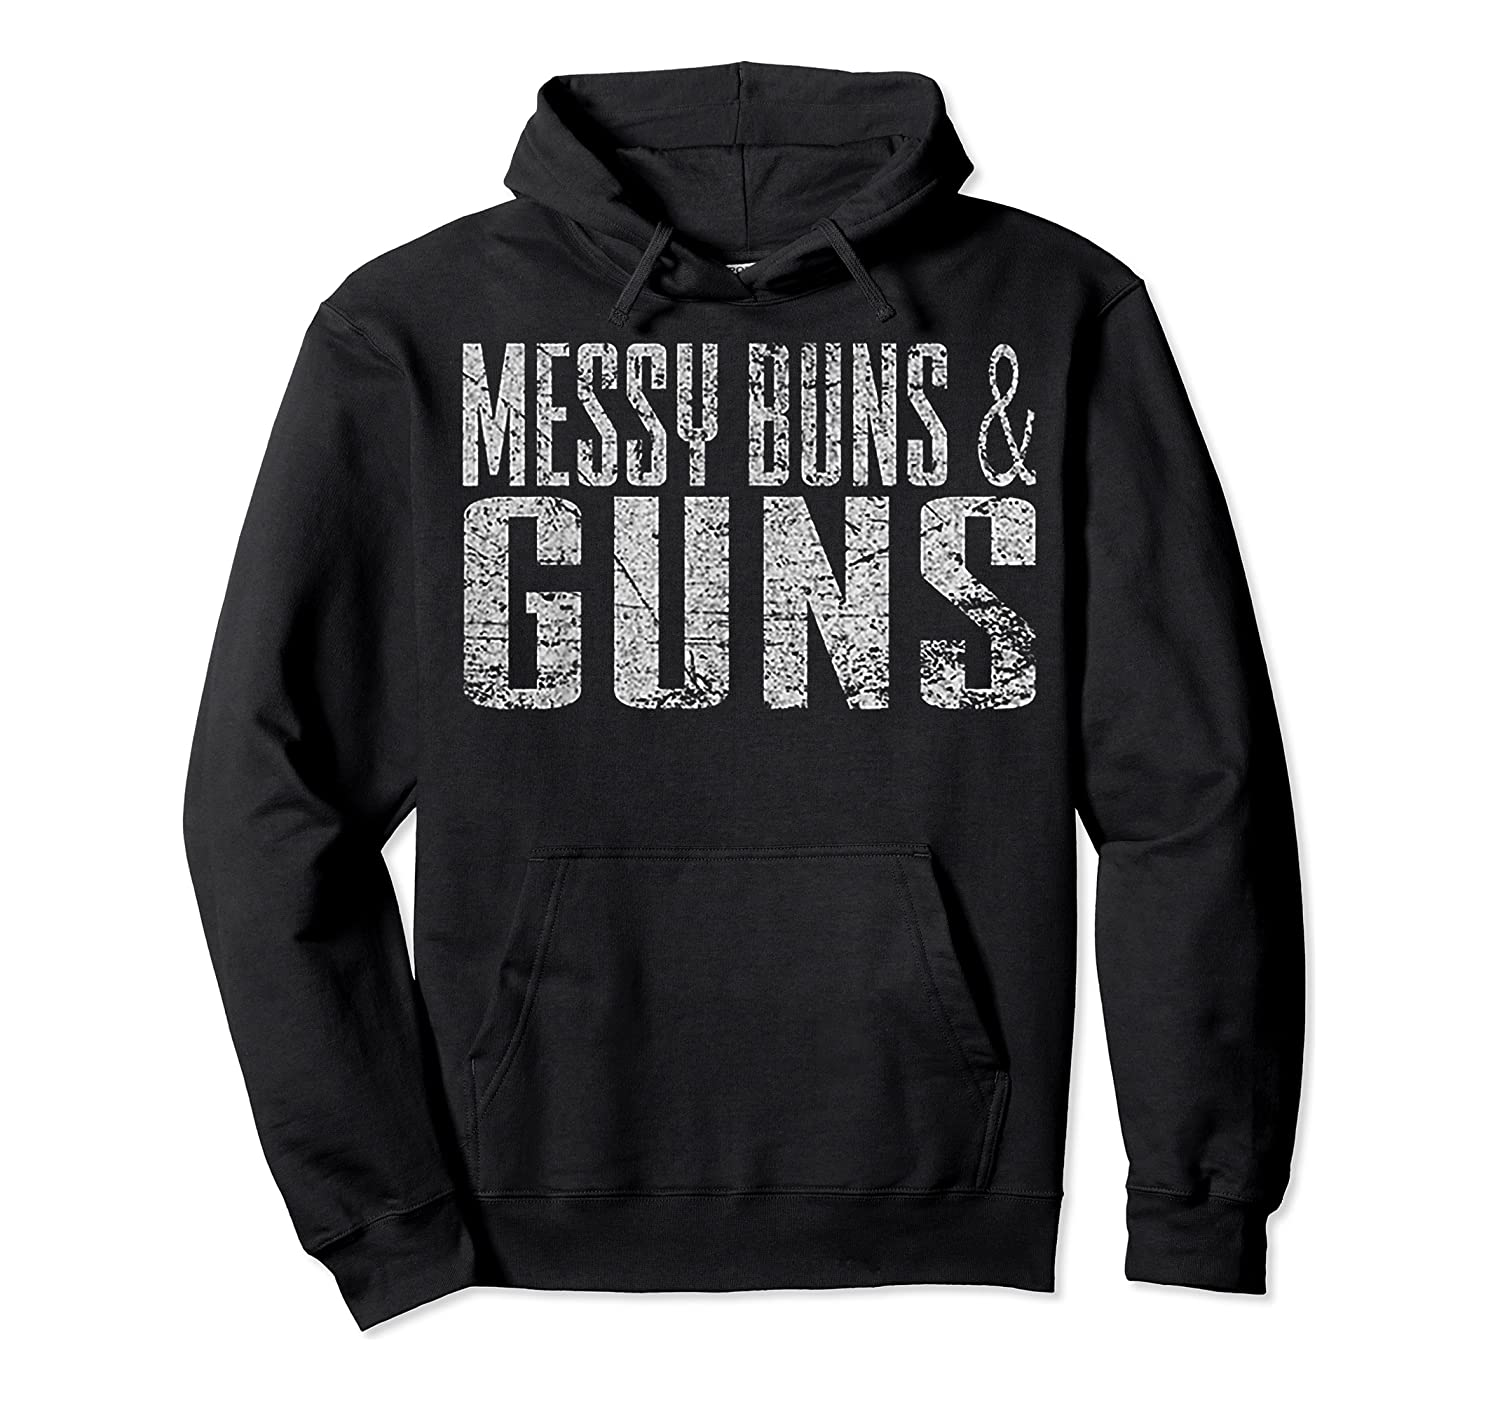 Messy Buns Guns Funny Shirts Unisex Pullover Hoodie